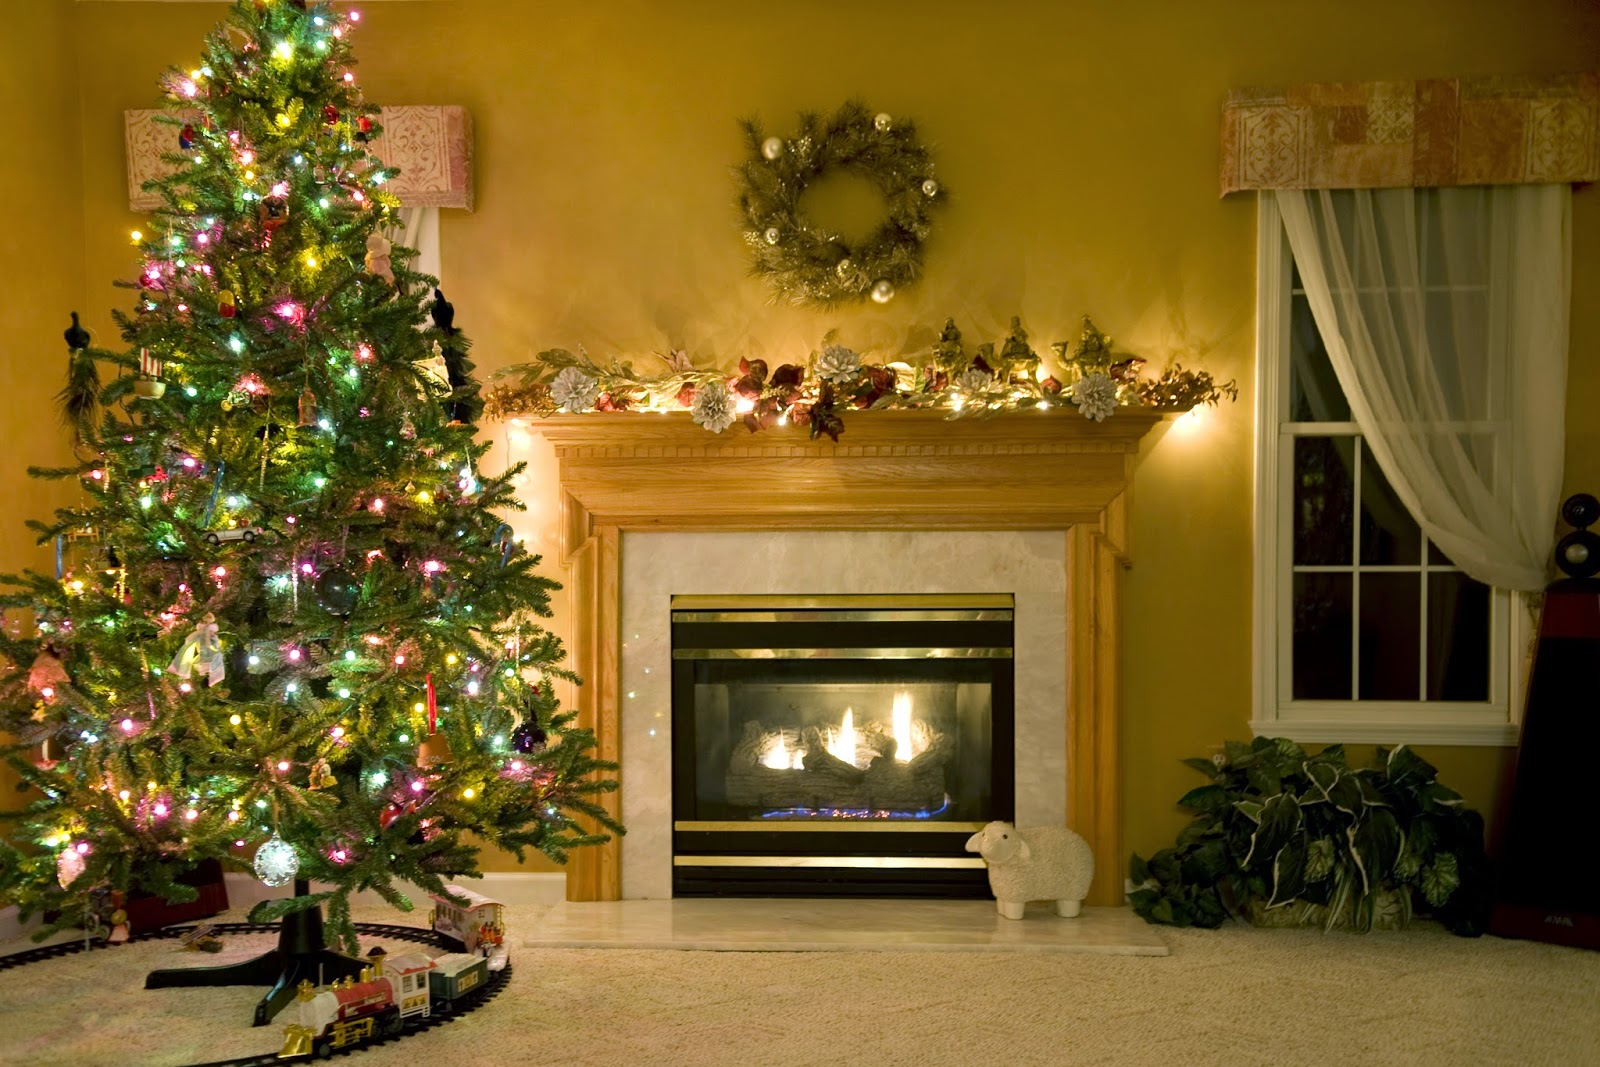 Fireplace-decoration-theme-white-light-background-with-x-mas-tree-picture-HD-free-download.jpg